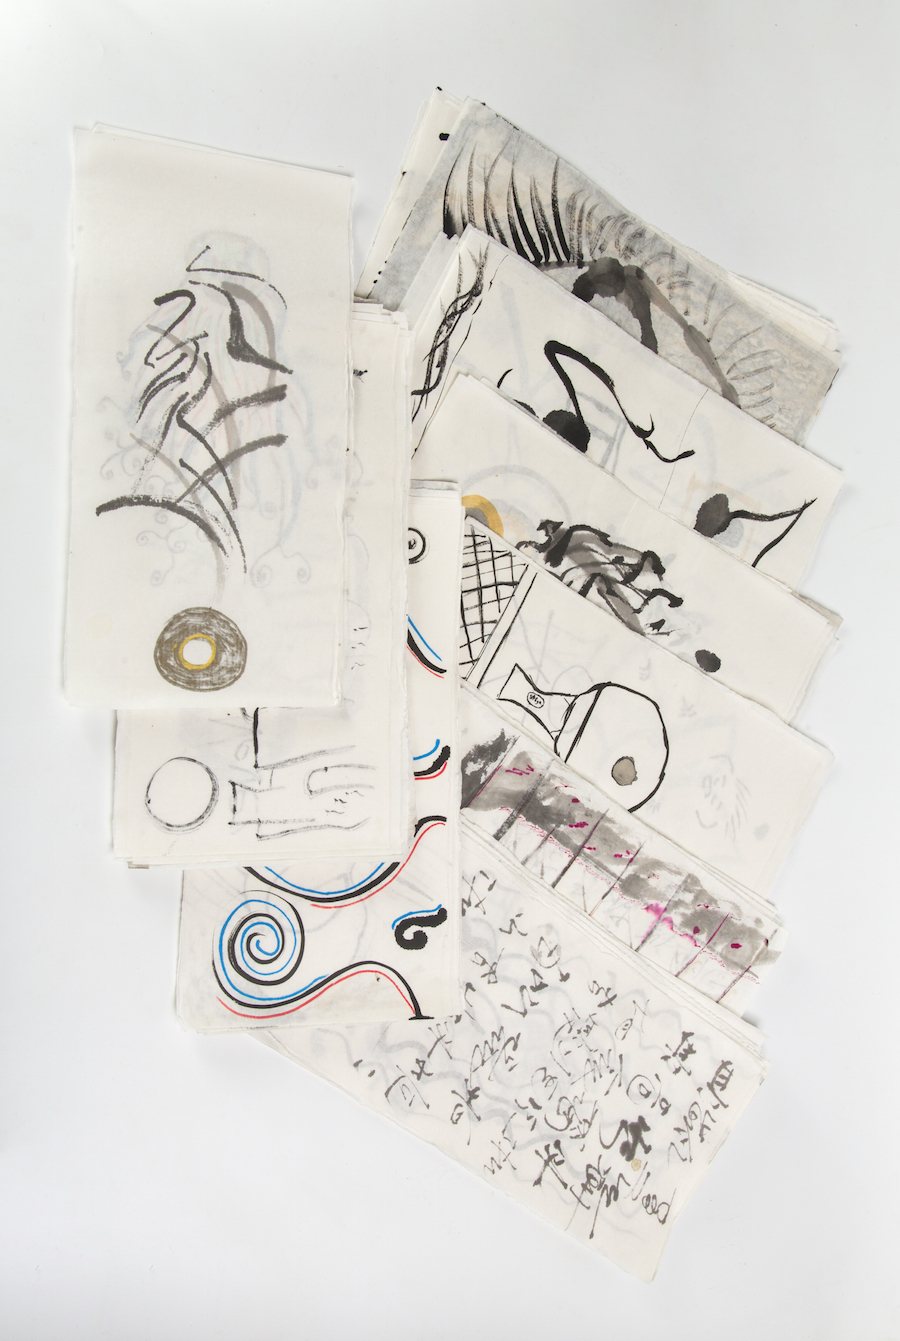 """""""174 Fire Drawings"""" assorted contributions from participants"""